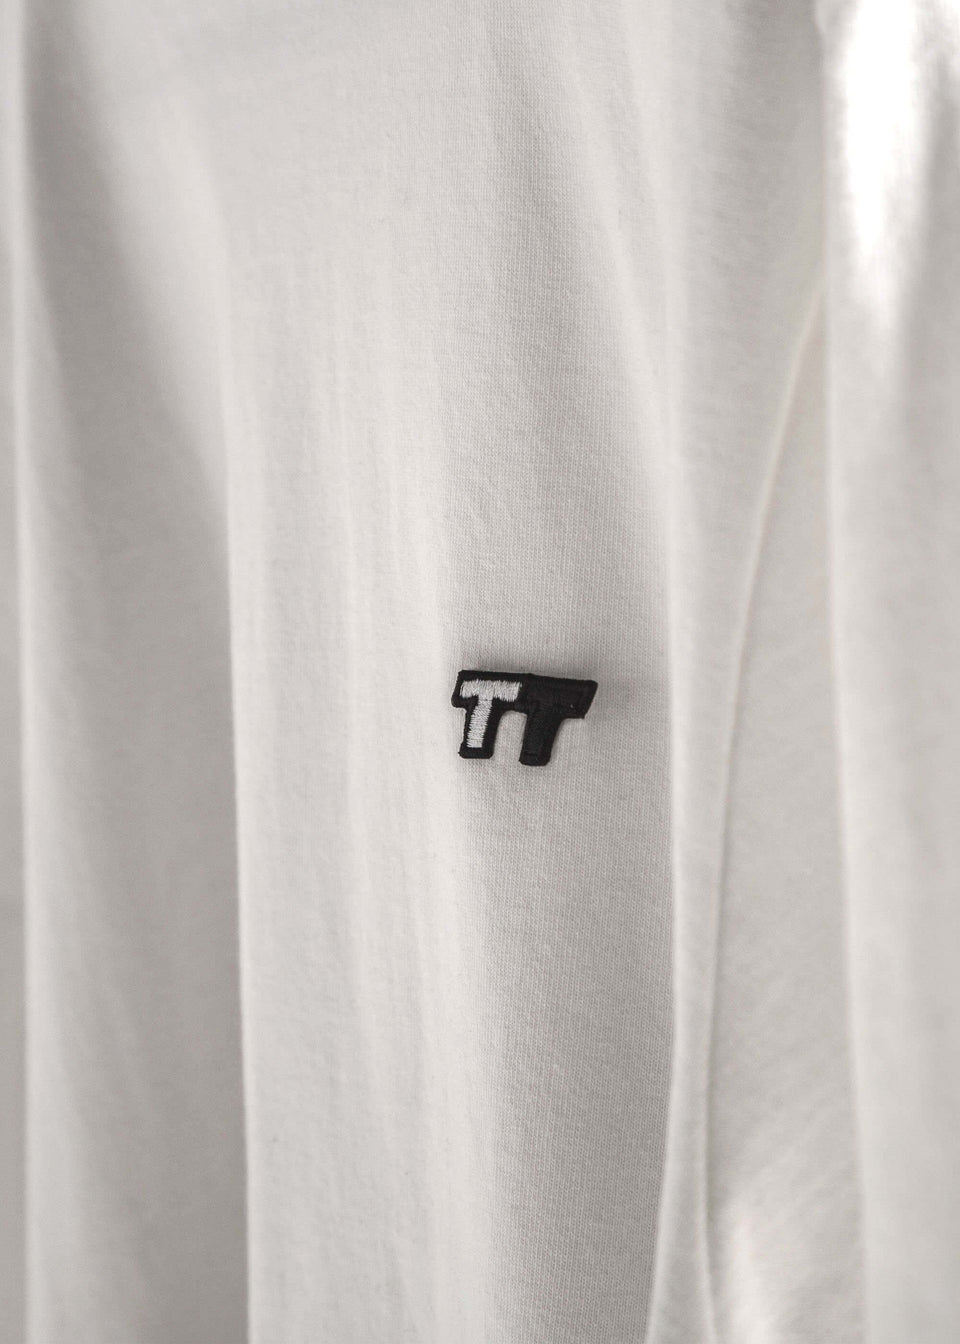 Hvy Tee Badge - Saint Street